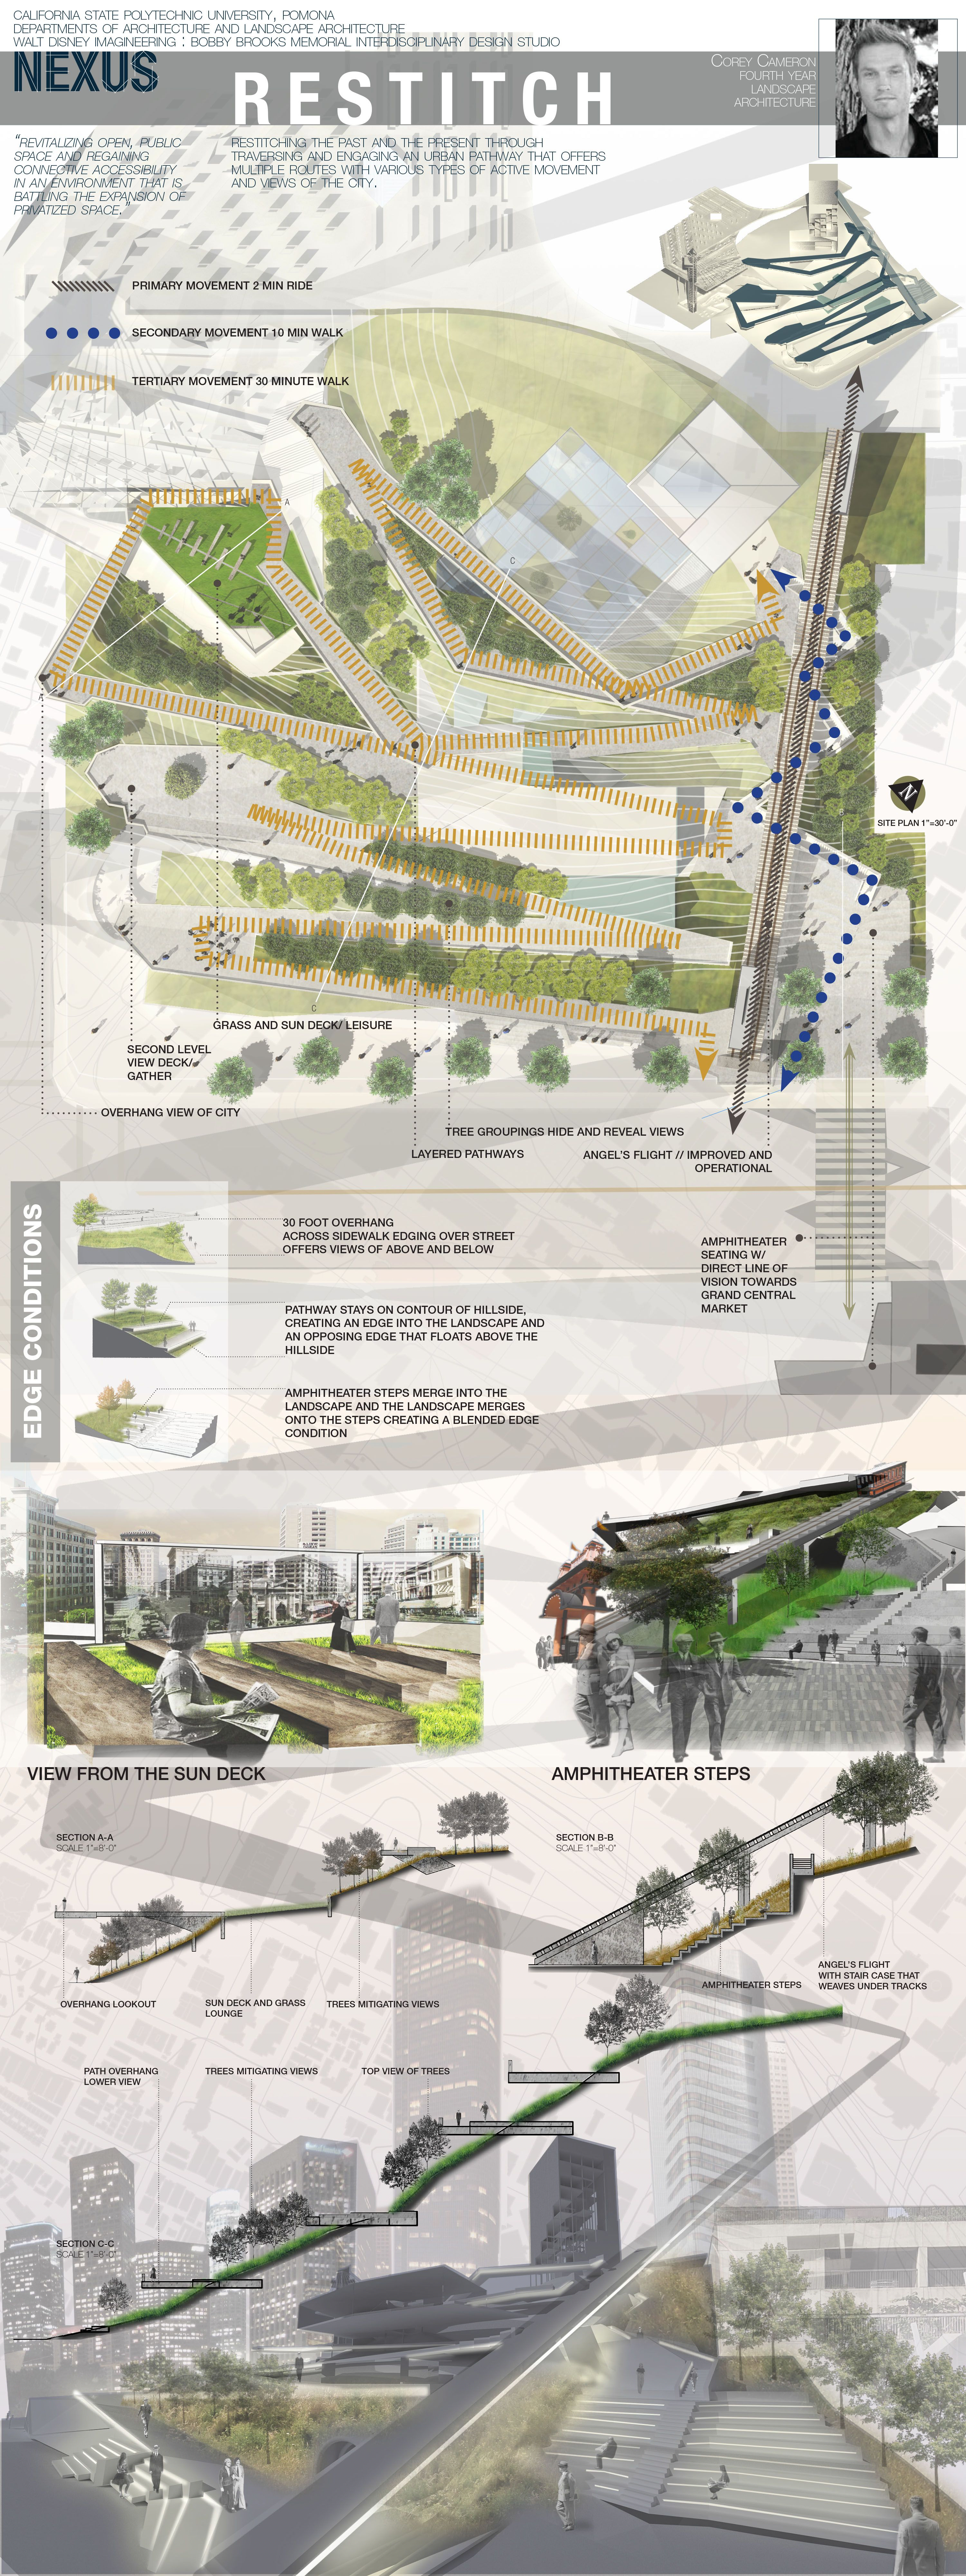 Cal poly pomona 4th year student landscape architecture design boards 2015 student work for Cal poly pomona interior design